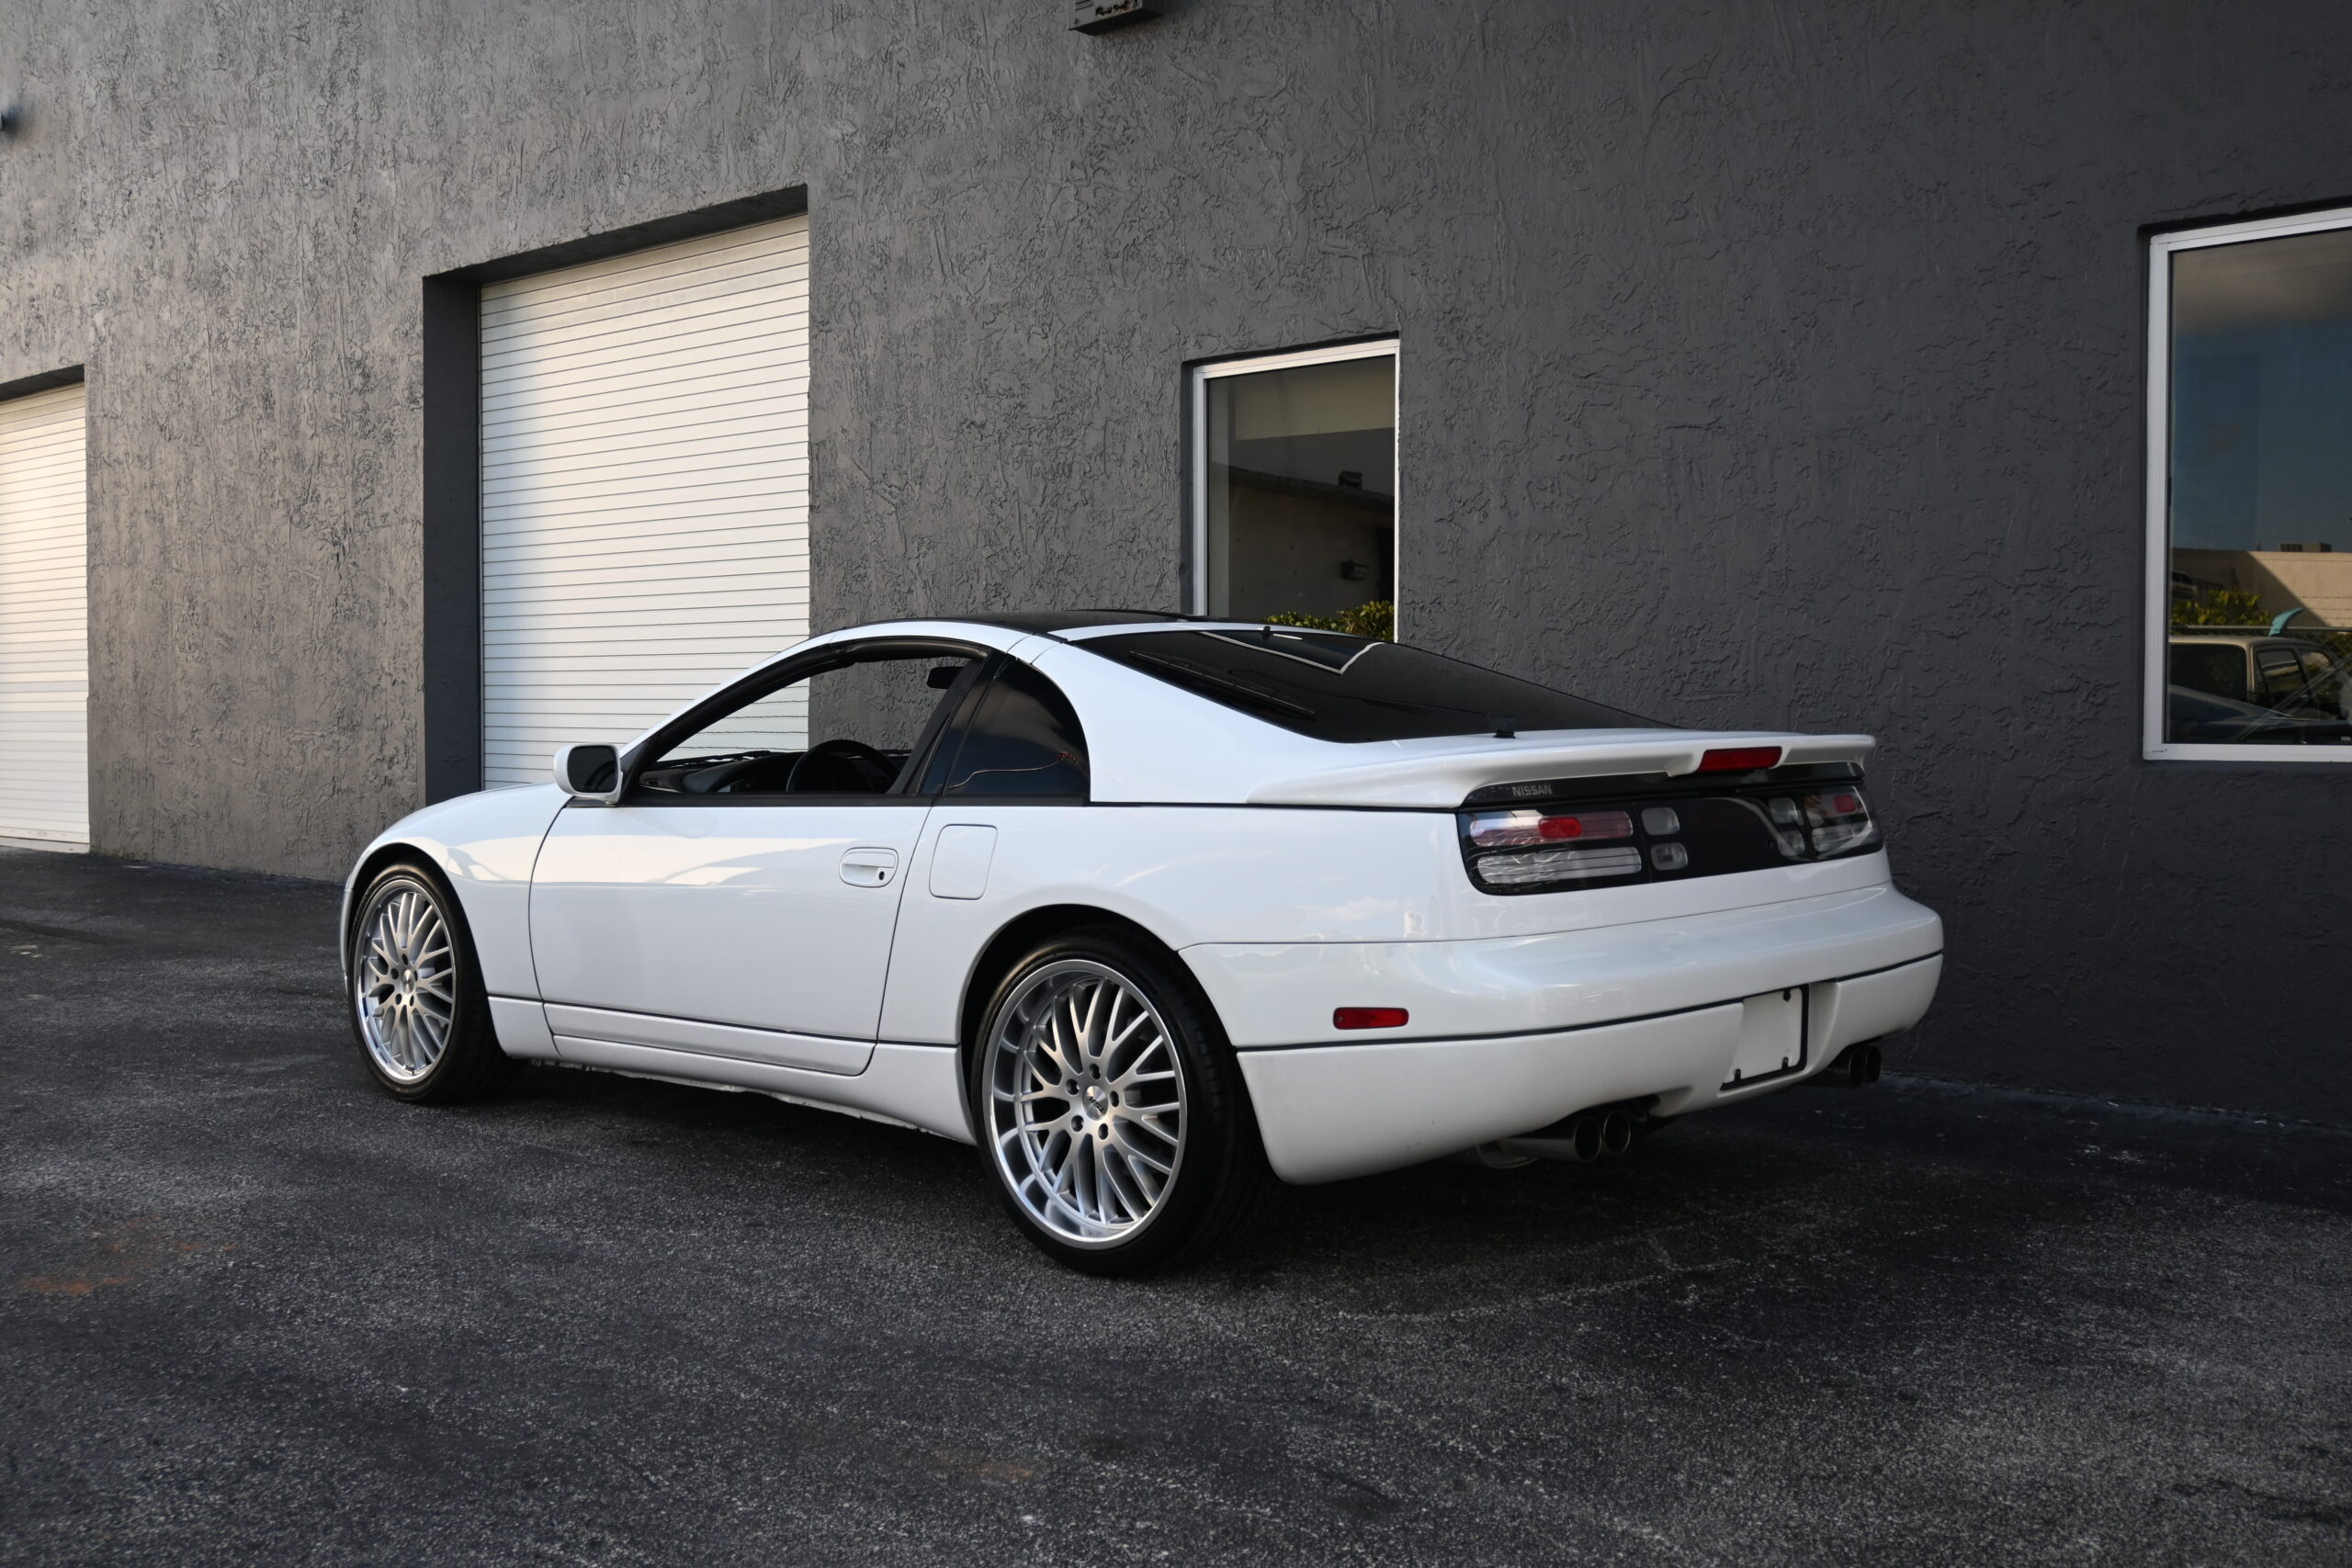 1991 Nissan 300ZX Turbo, ONLY 20K ACTUAL miles